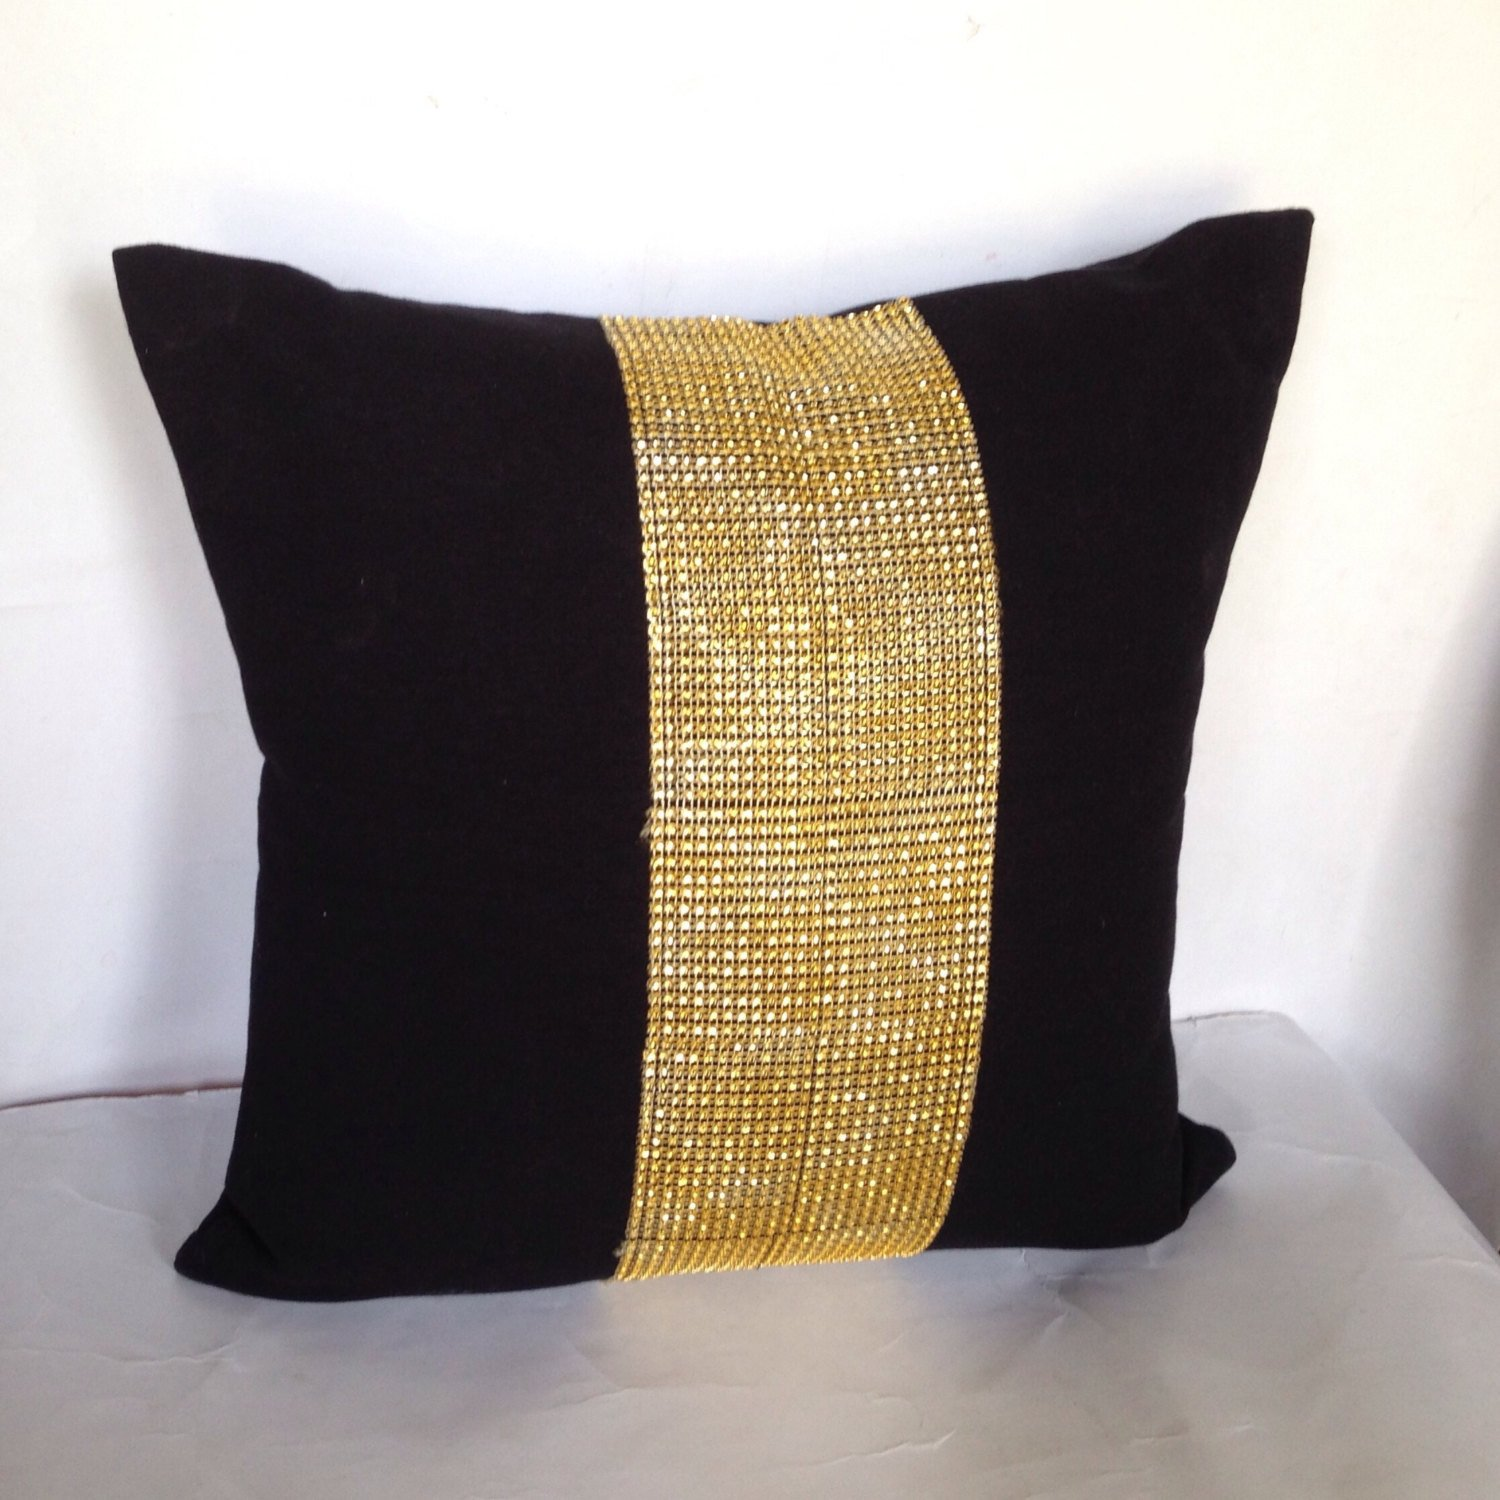 Coral Decorative Pillows | Purple Lumbar Pillow | Gold Throw Pillows